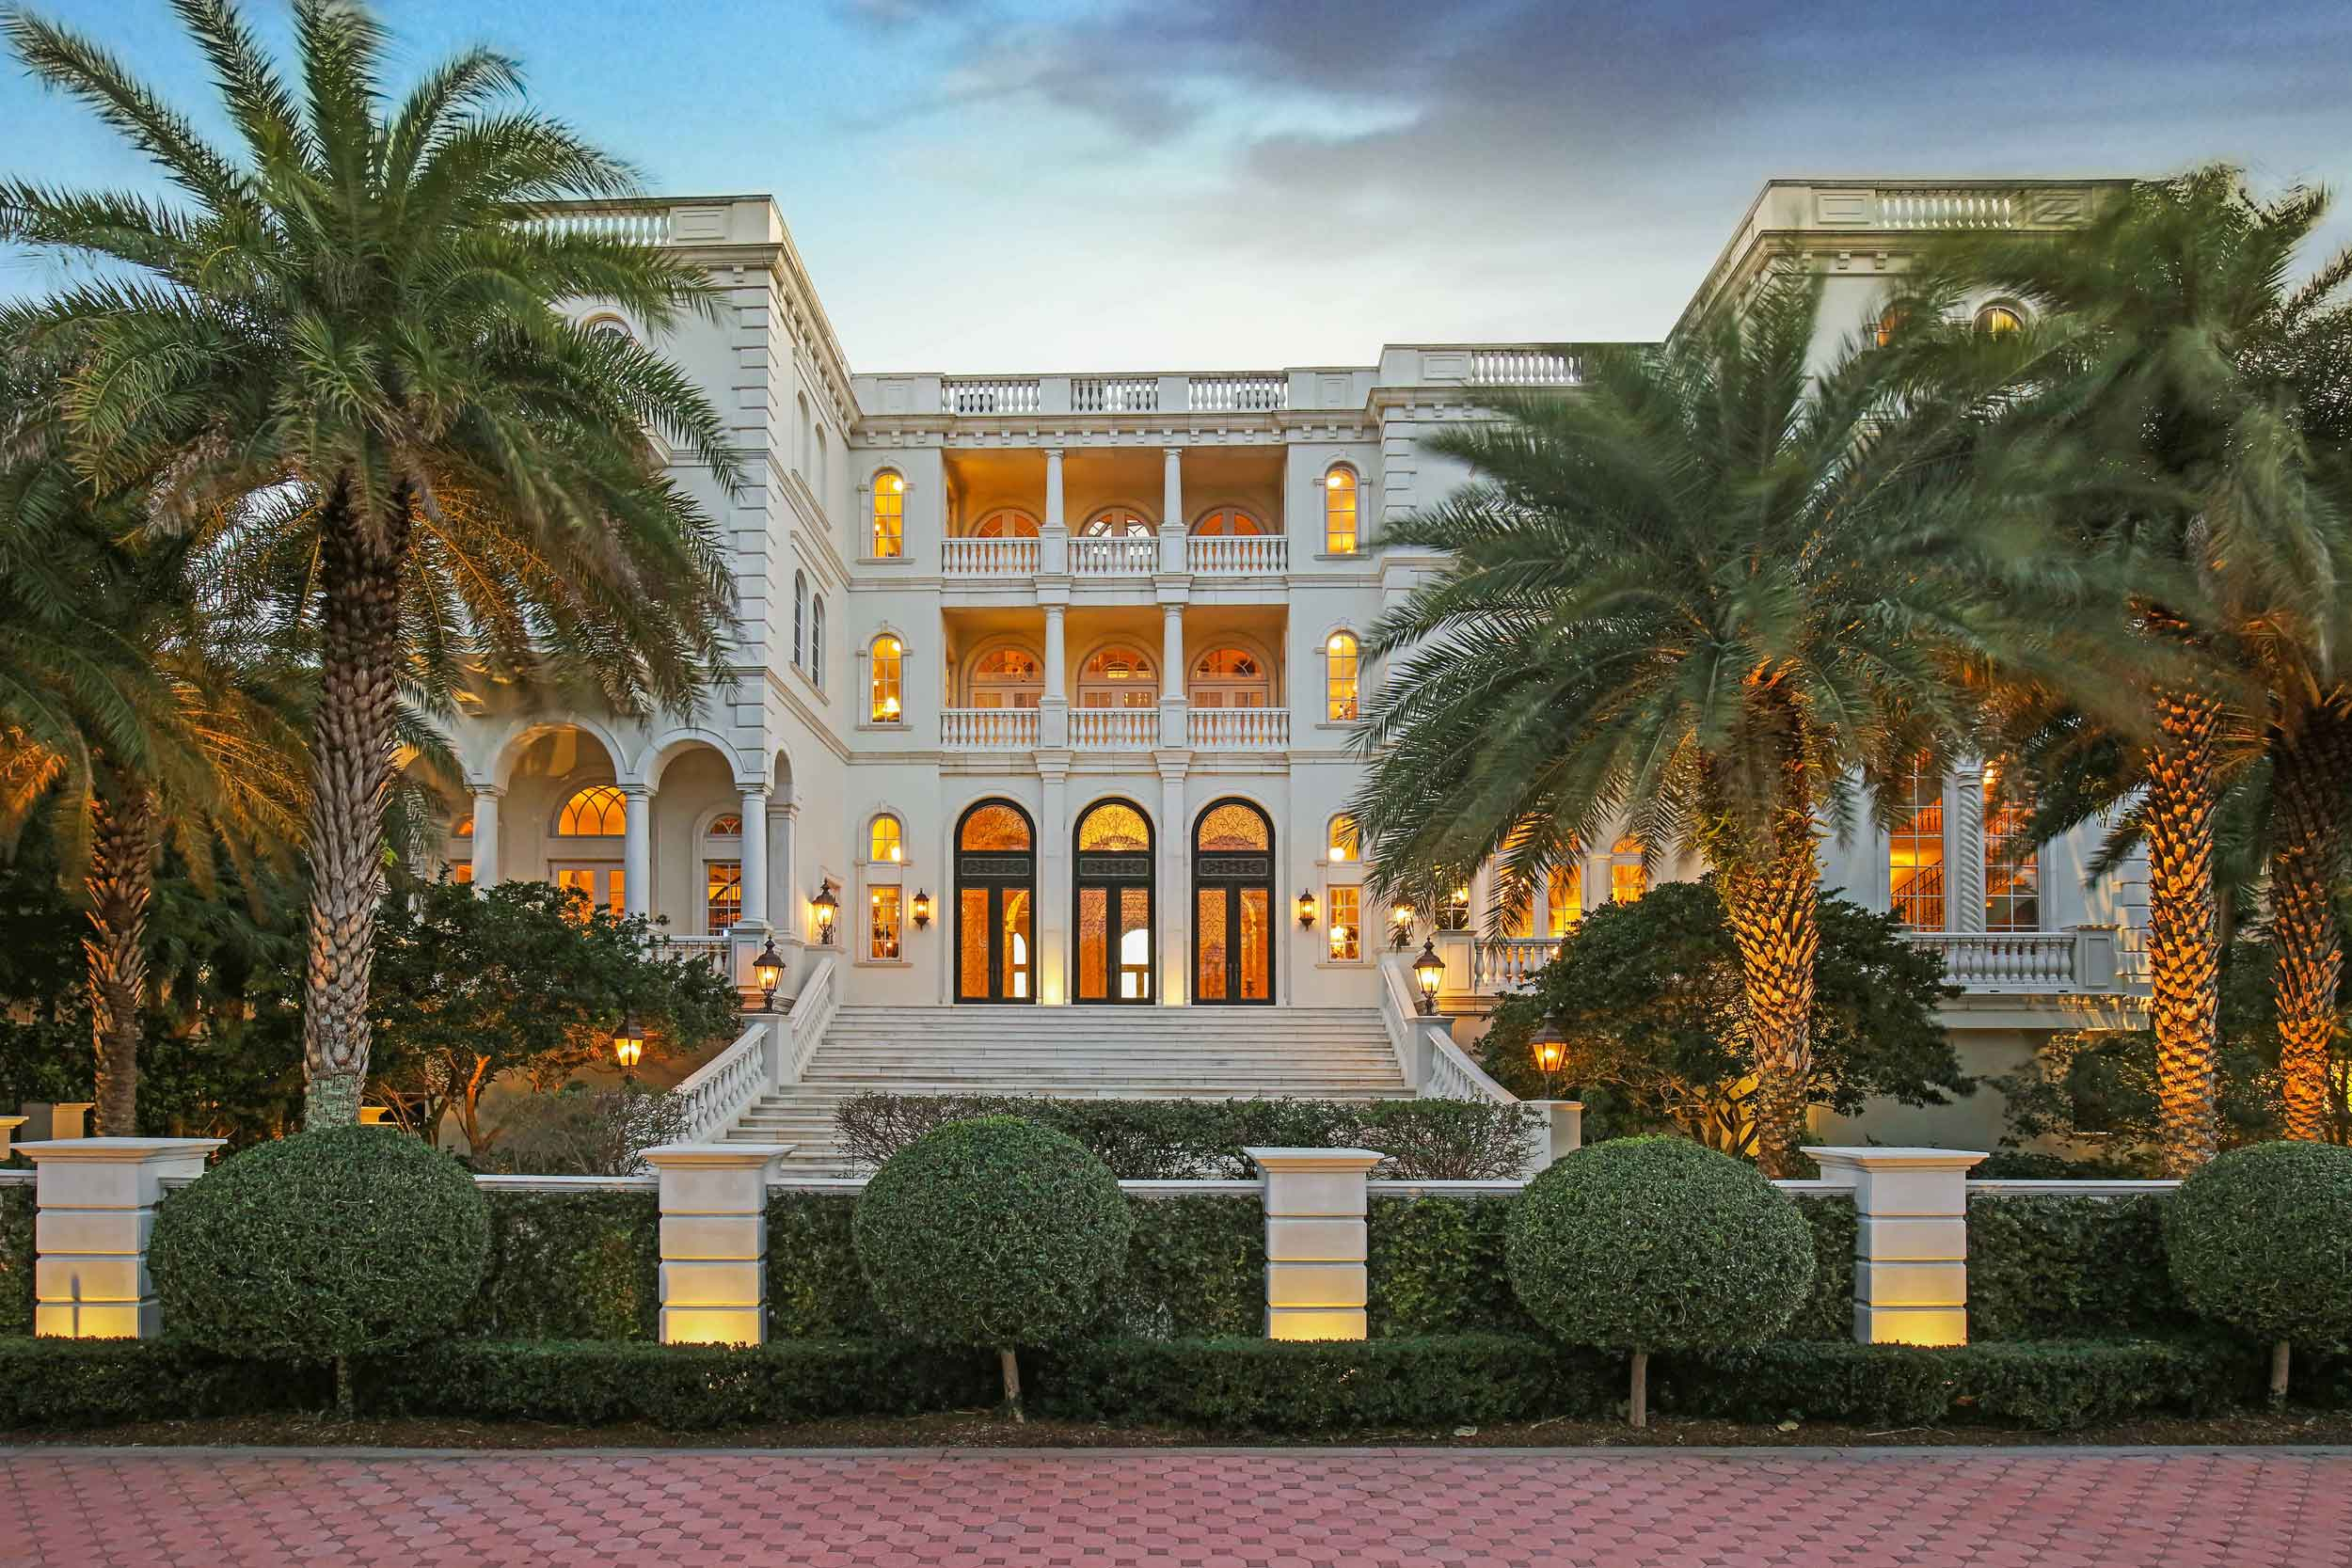 An ode to the majesty of Renaissance Venice, Serenissima—The Most Serene—is one of the finest private residences in the state of Florida.